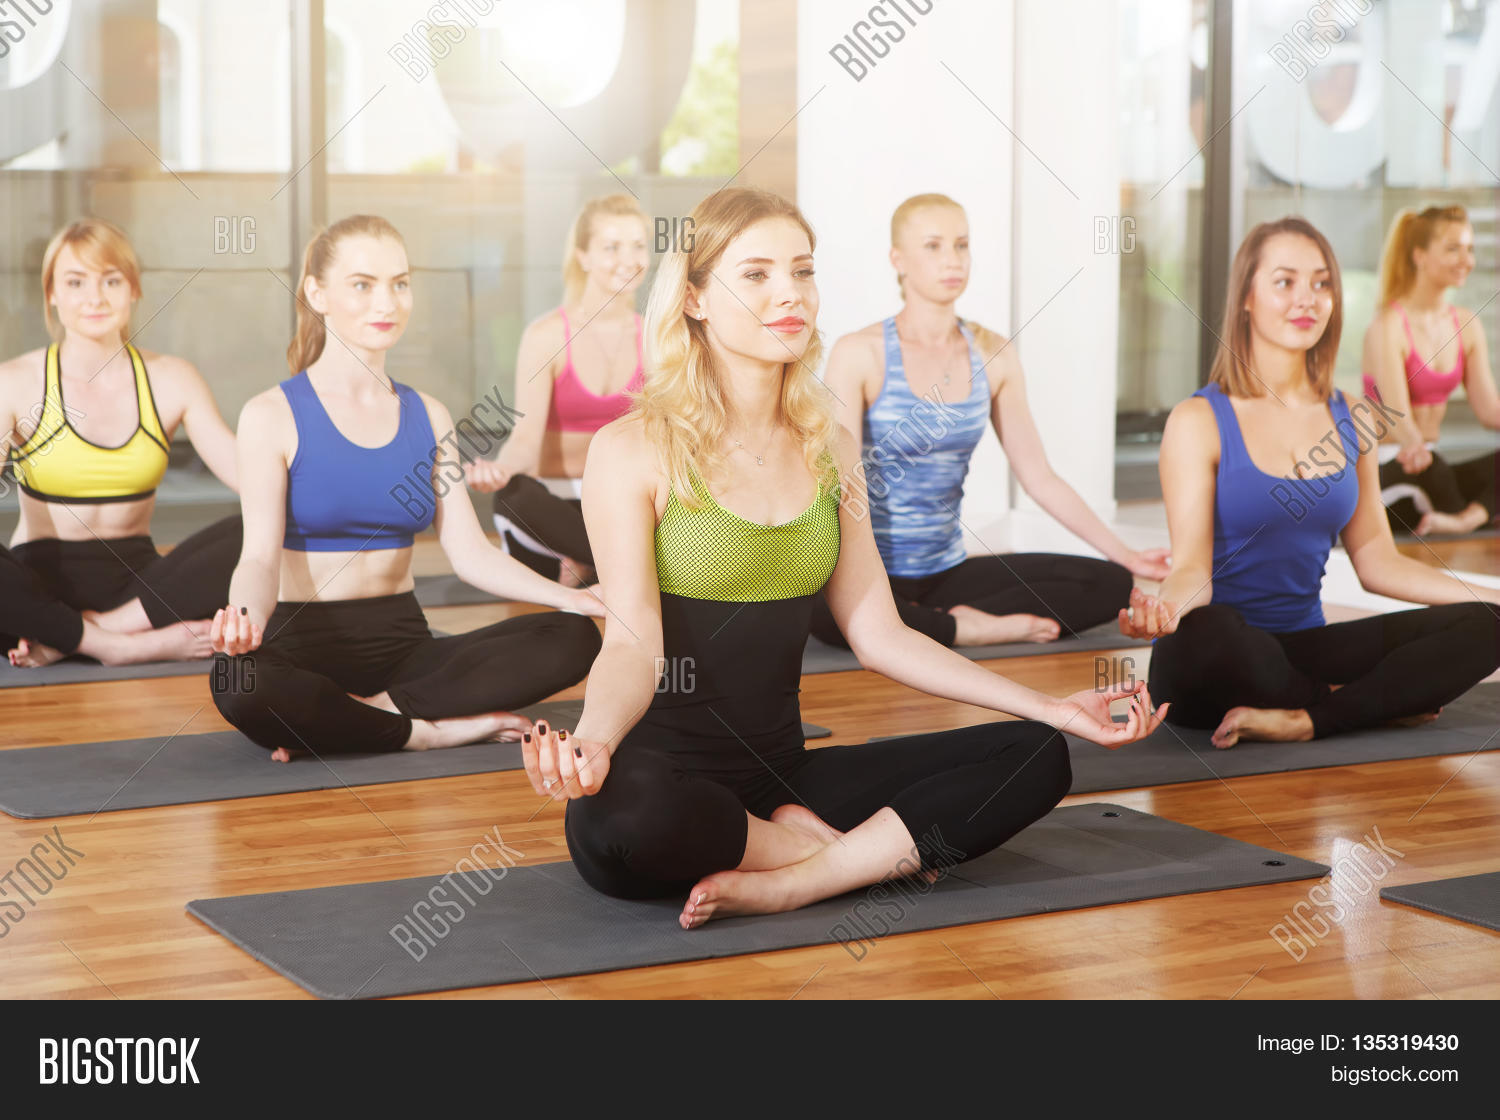 Group Of Young Women In Yoga Class People Making Exercises Girls Do